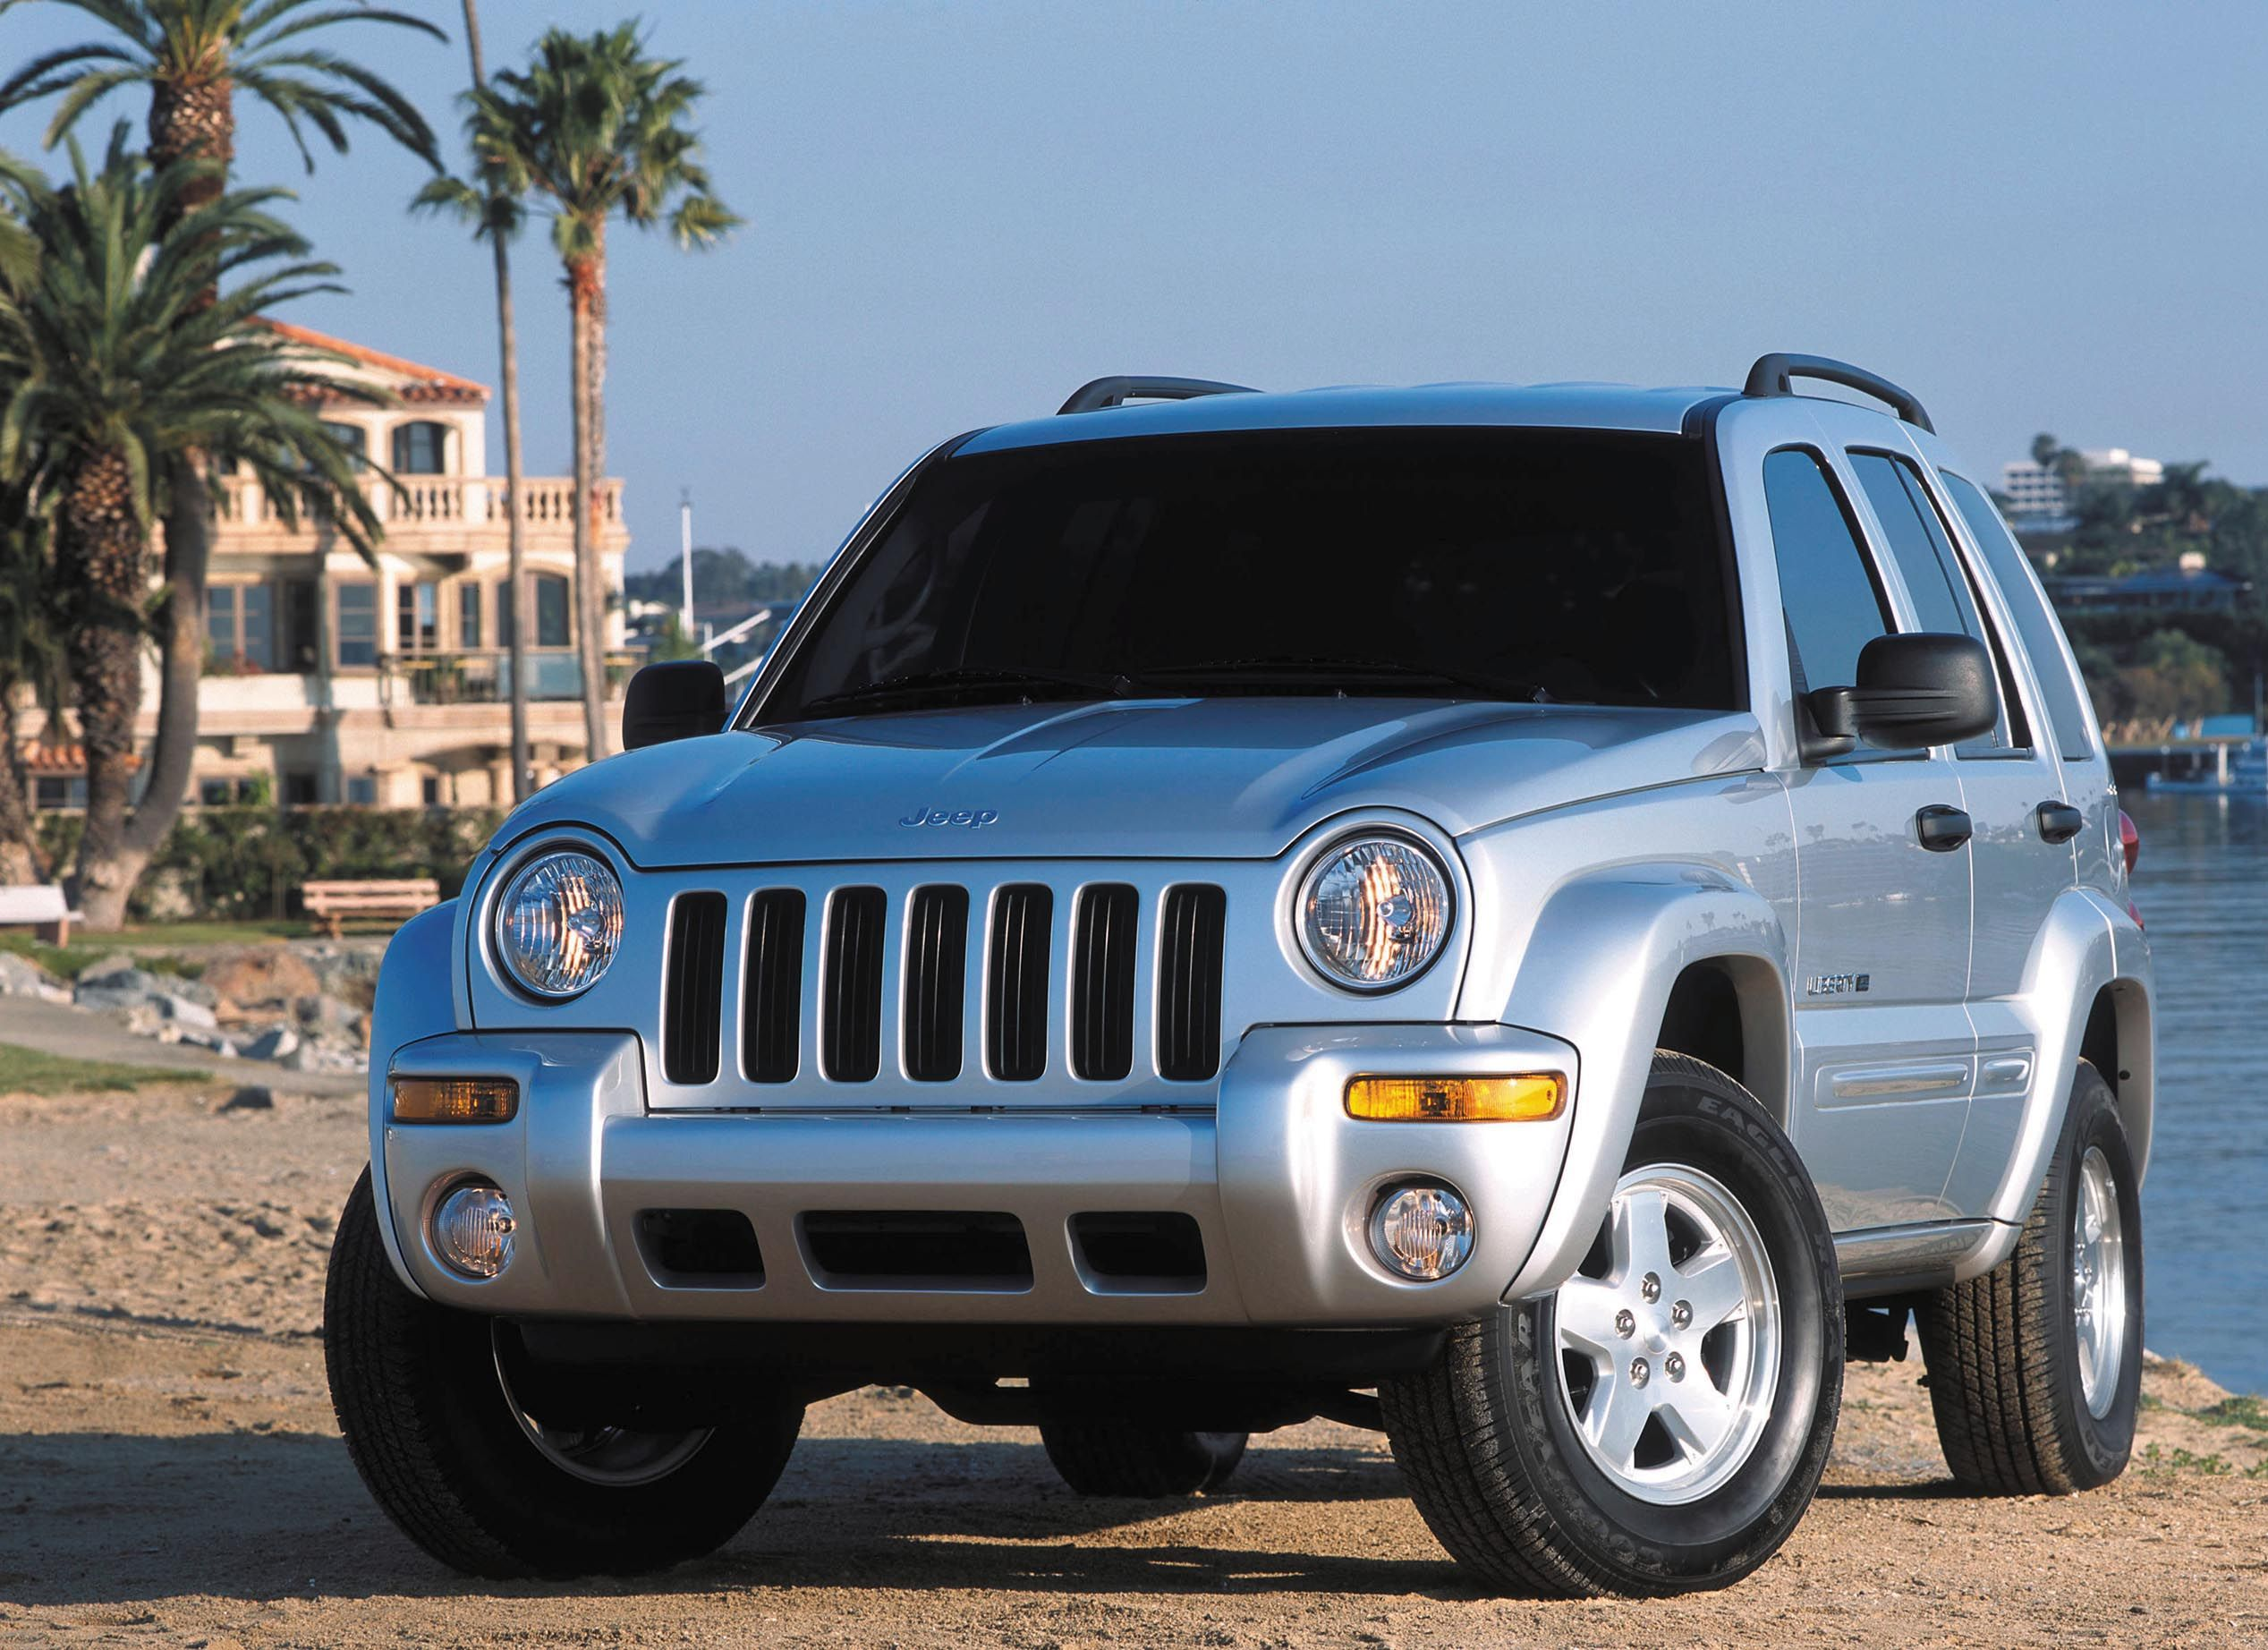 2002 Jeep Liberty Towing Capacity Jpeg   Http://carimagescolay.casa/2002